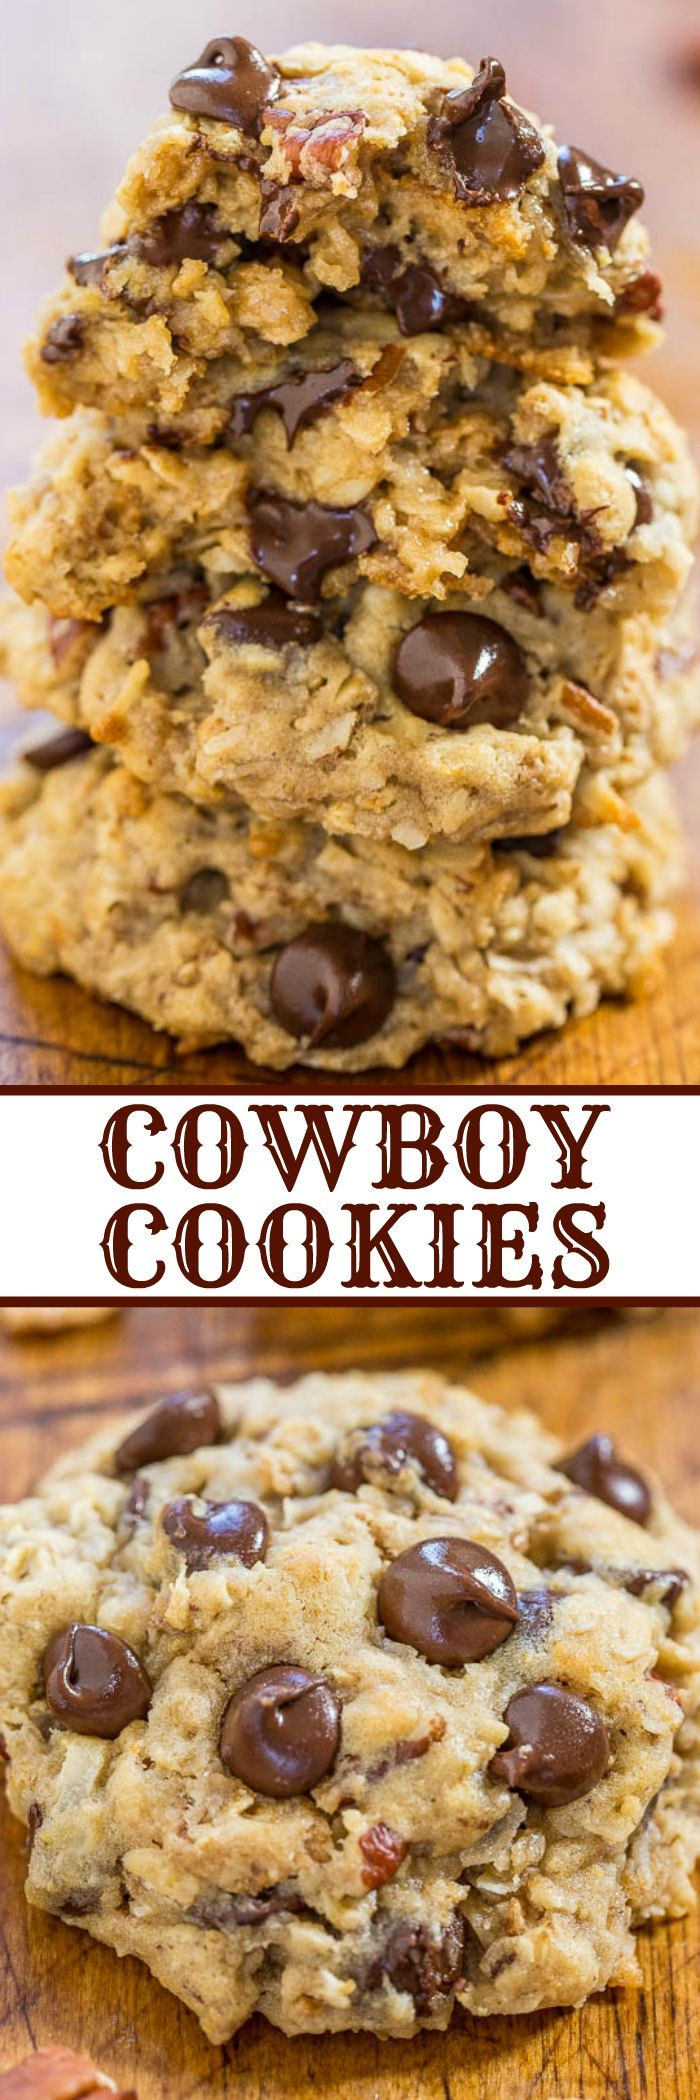 Cowboy Cookies - Chewy oats, sweet coconut, crunchy pecans, and plenty of chocolate! Hearty with tons of texture and they stay soft and chewy!! Everyone (not just cowboys) loves these cookies! Great for #Christmas Cookie Exchanges!